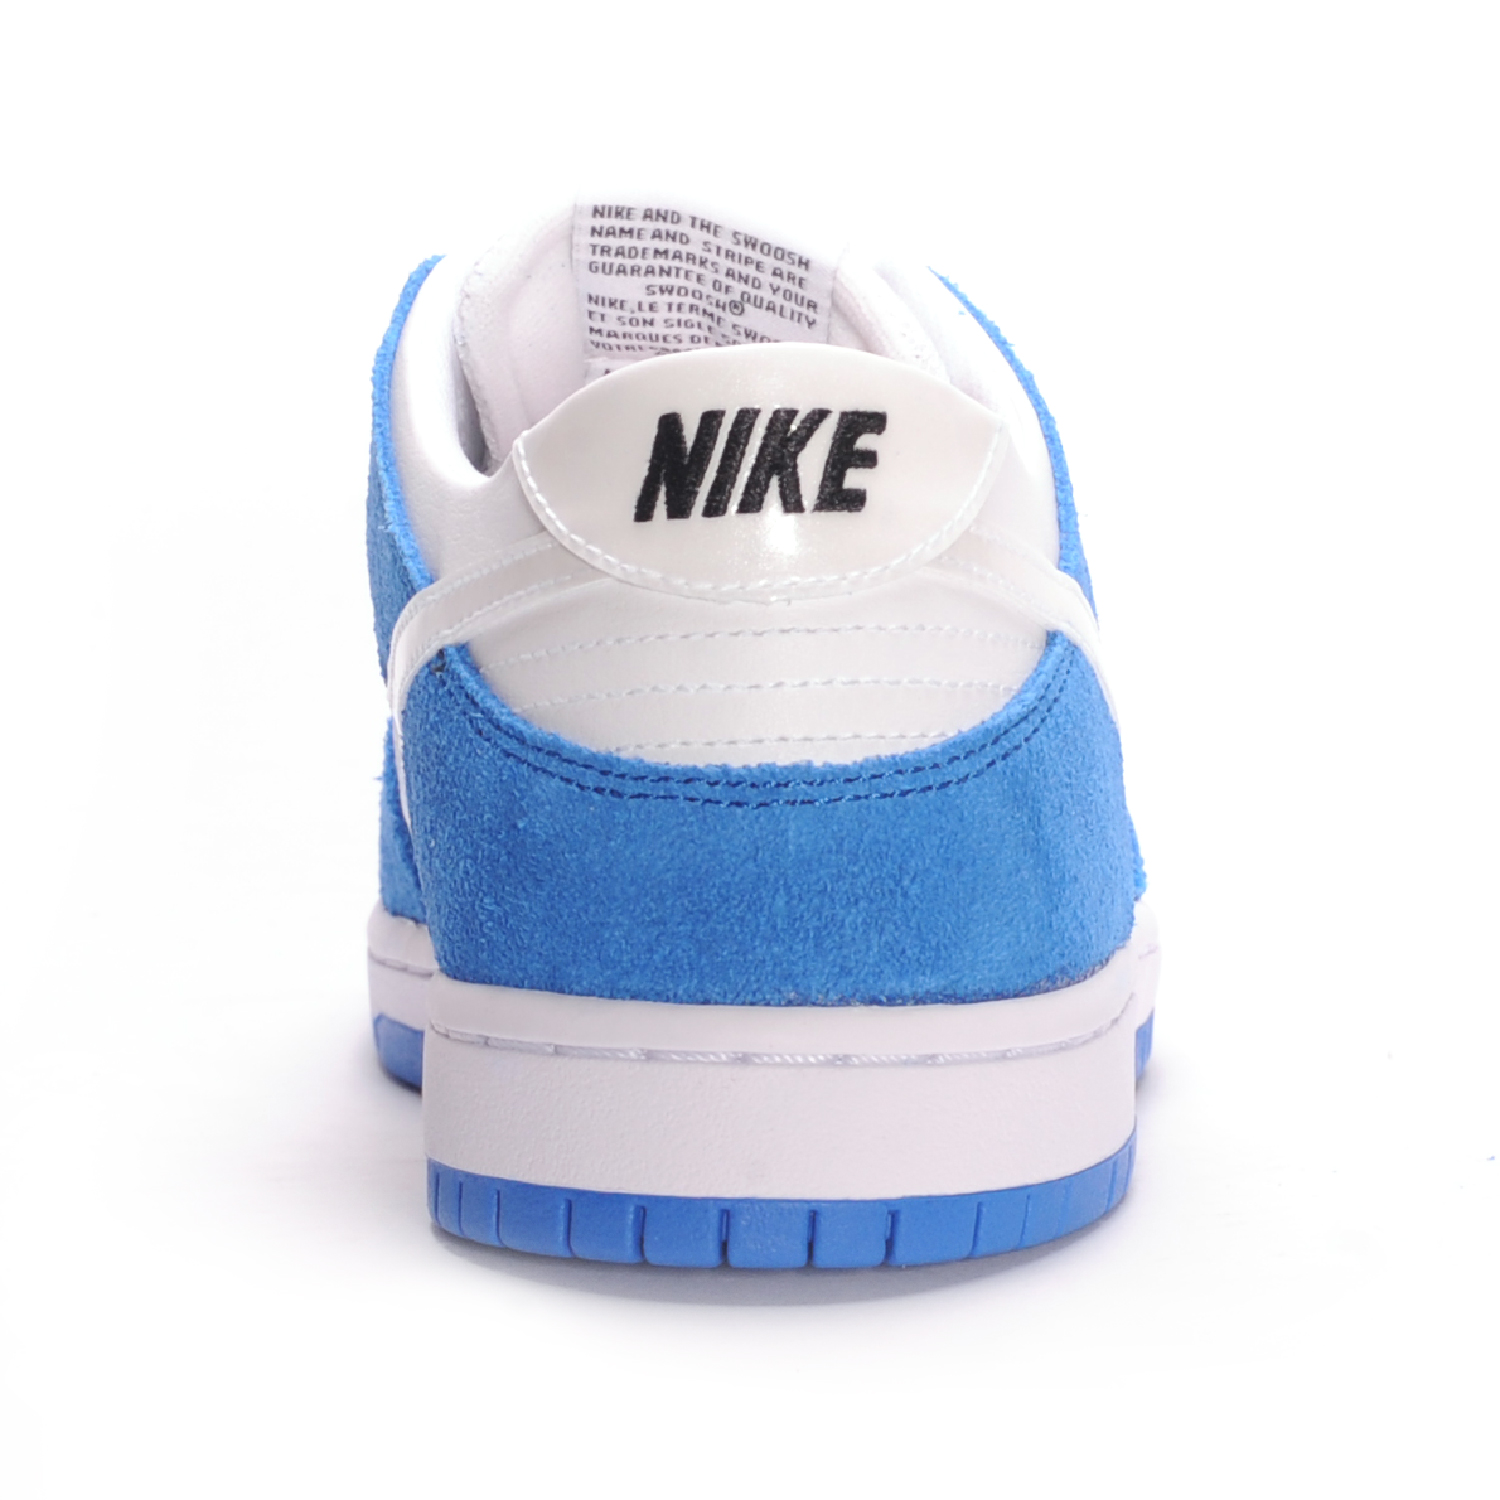 official photos 757b8 a62f1 UPC 091208337708 product image for Nike Sb Dunk Low Pro Ishod Wair (blue  Spark